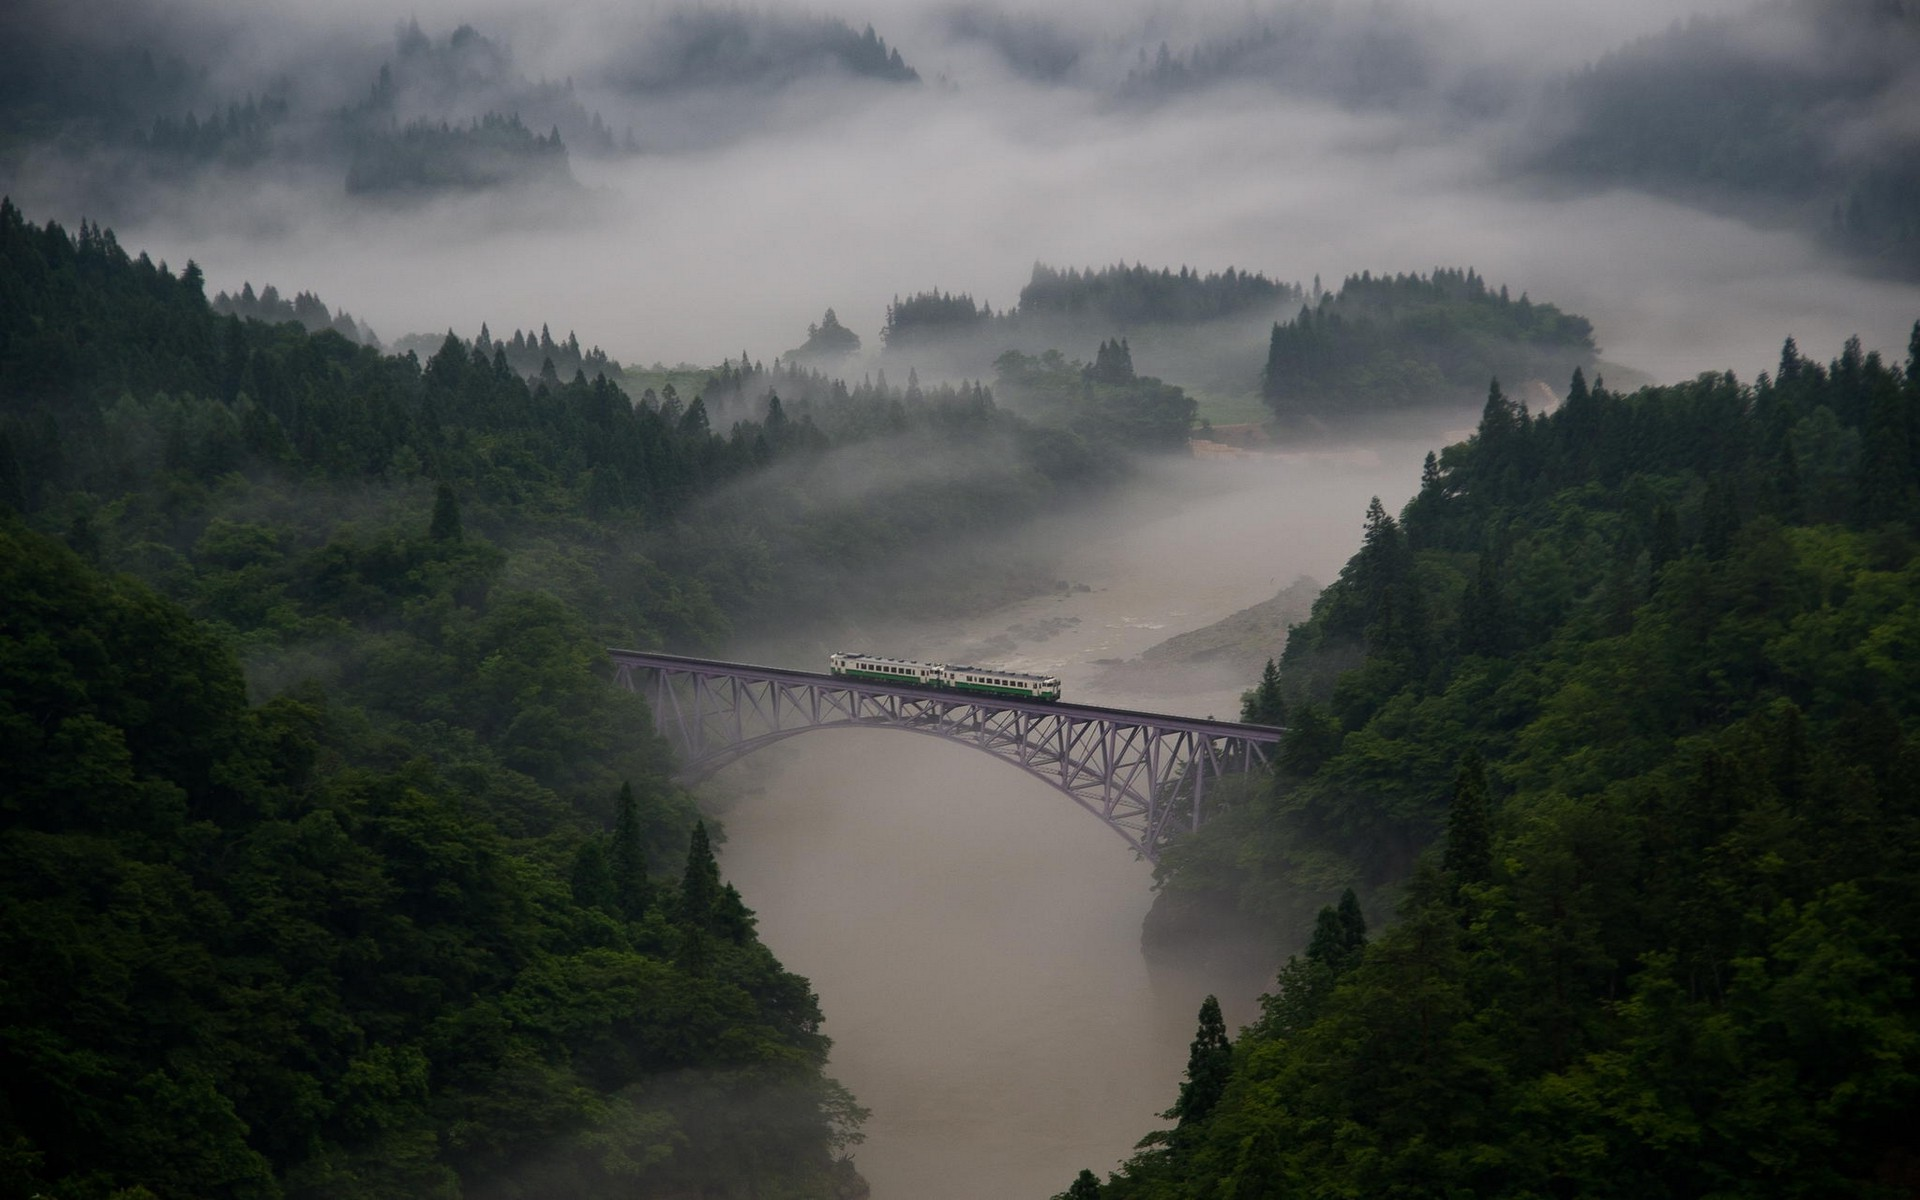 4k Wallpaper 3d National Geographic Landscape Nature Mist Morning Train Bridge Forest